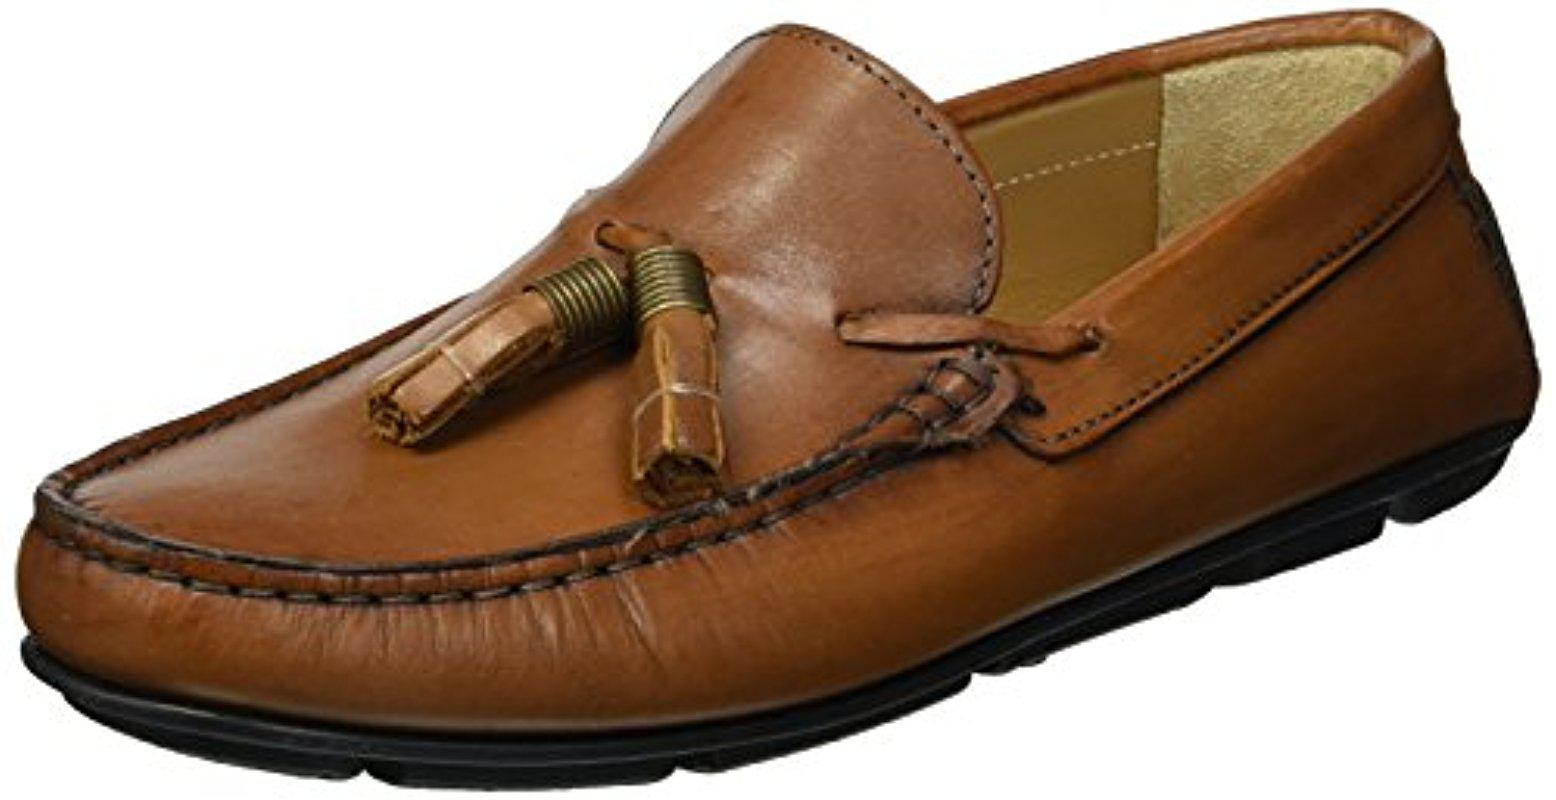 Men's Randall Driver Driving Style Loafer